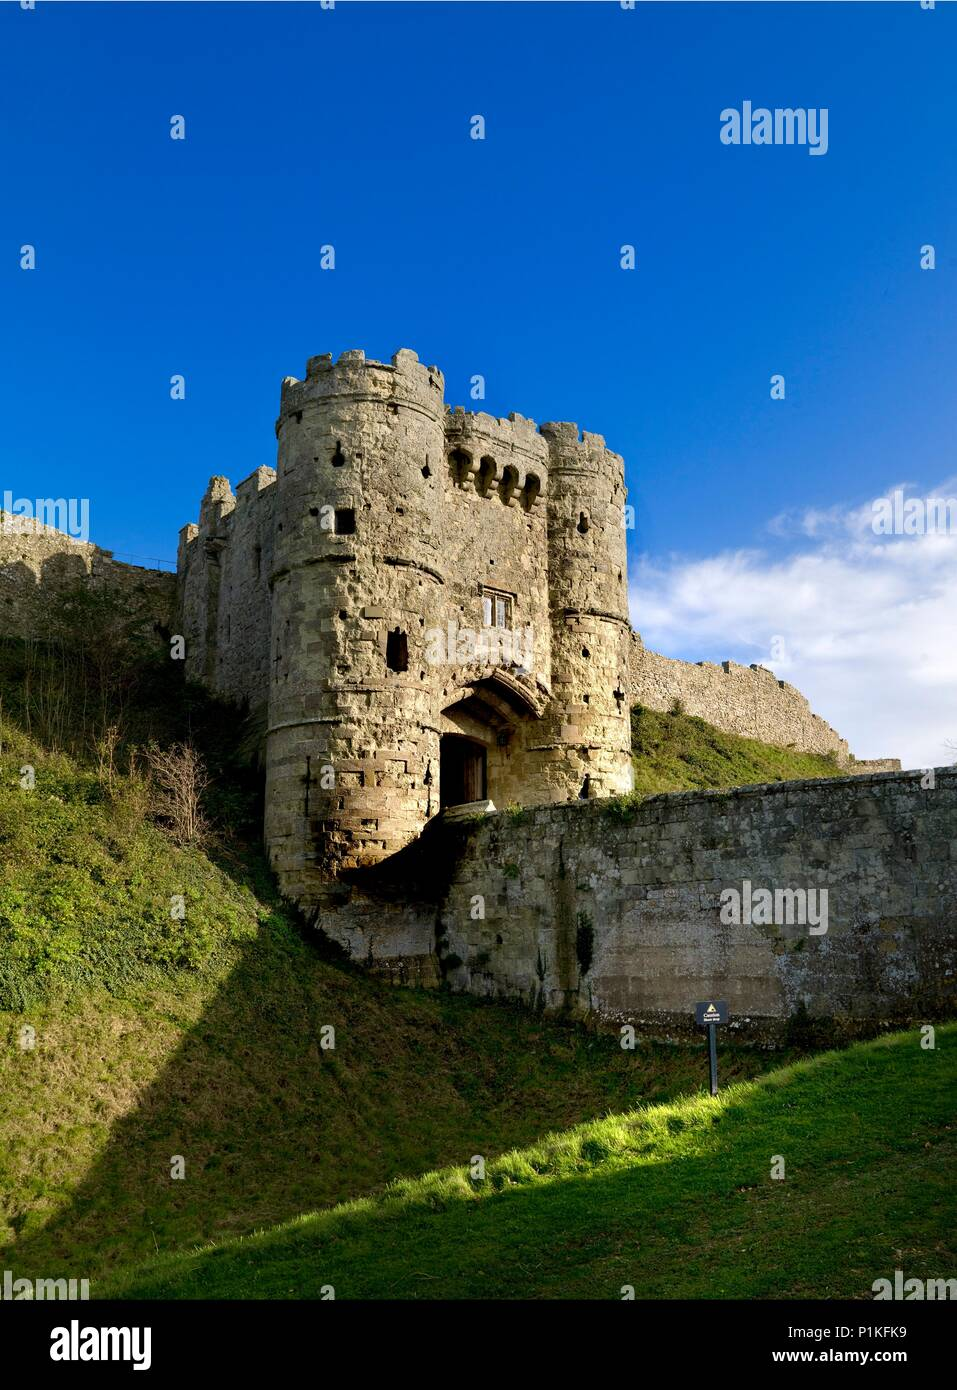 Gatehouse of Carisbrooke Castle, Isle of Wight, c1980-c2017. King Charles I was imprisoned in the castle for fourteen months before his trial and exec - Stock Image